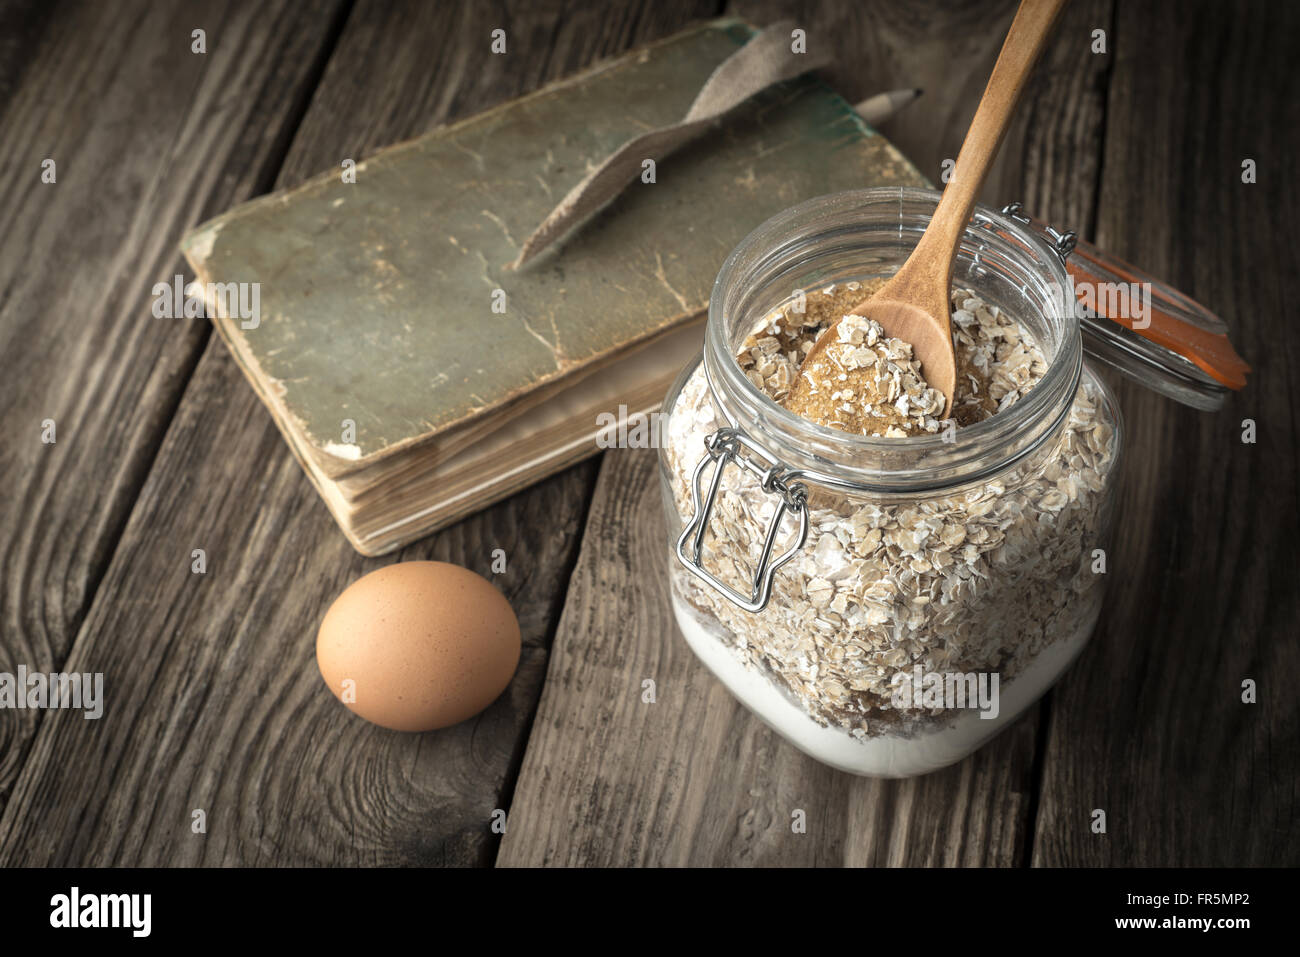 Book of recipes and ingredients for cookies on a wooden table horizontal - Stock Image